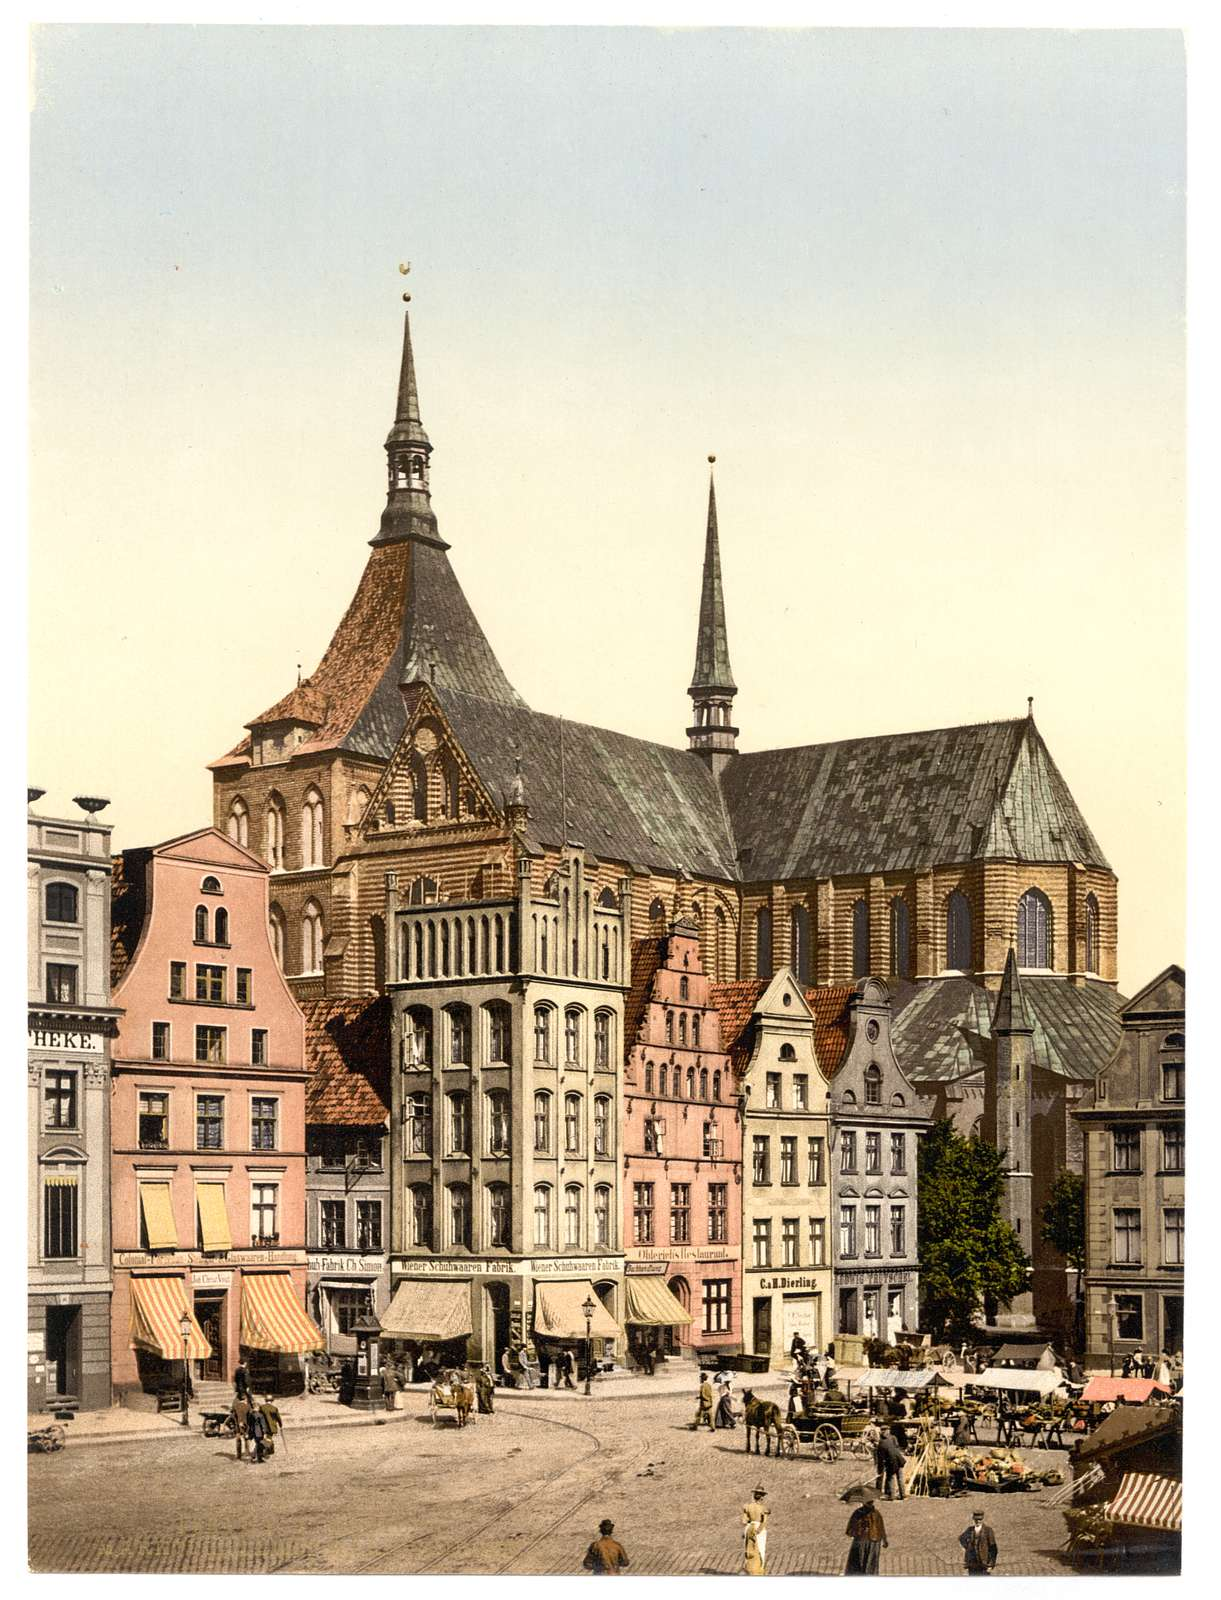 [Market place and Marien Church, Rostock, Mecklenburg-Schwerin, Germany]